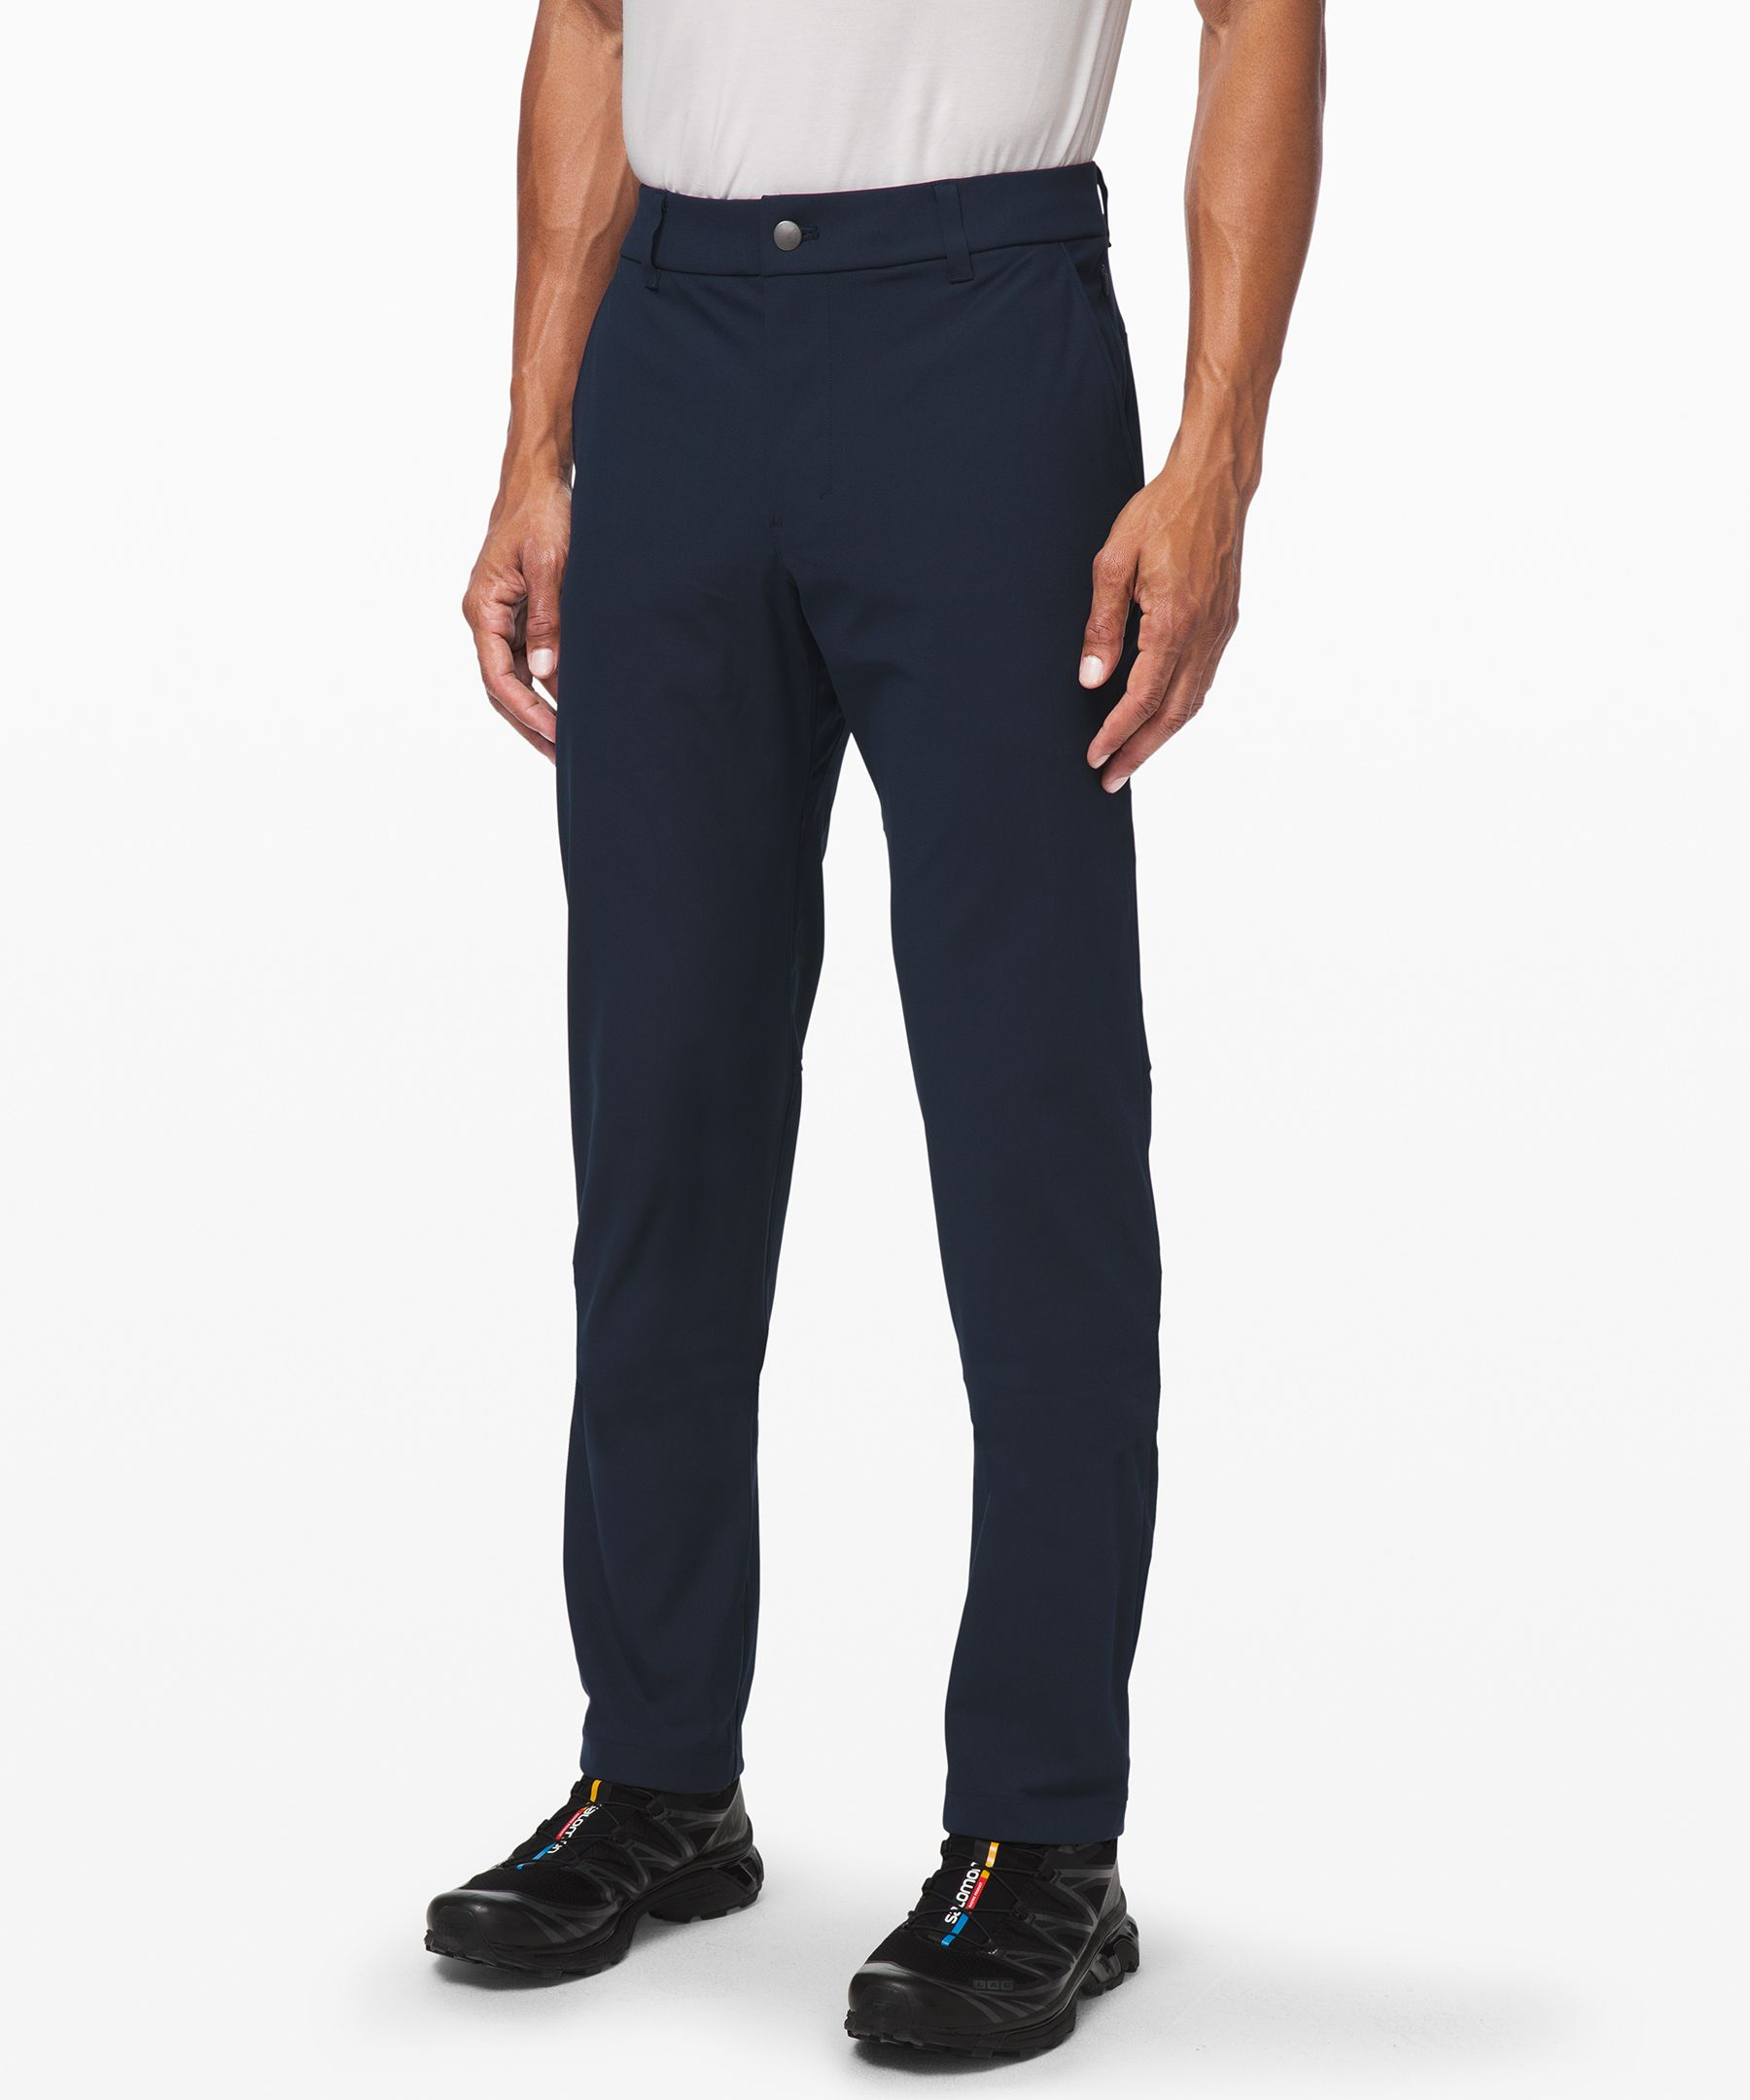 Our men\\\'s pants are designed to keep you dry and comfortable for running, yoga, workouts and everything else. Complimentary shipping to Canada and the US.